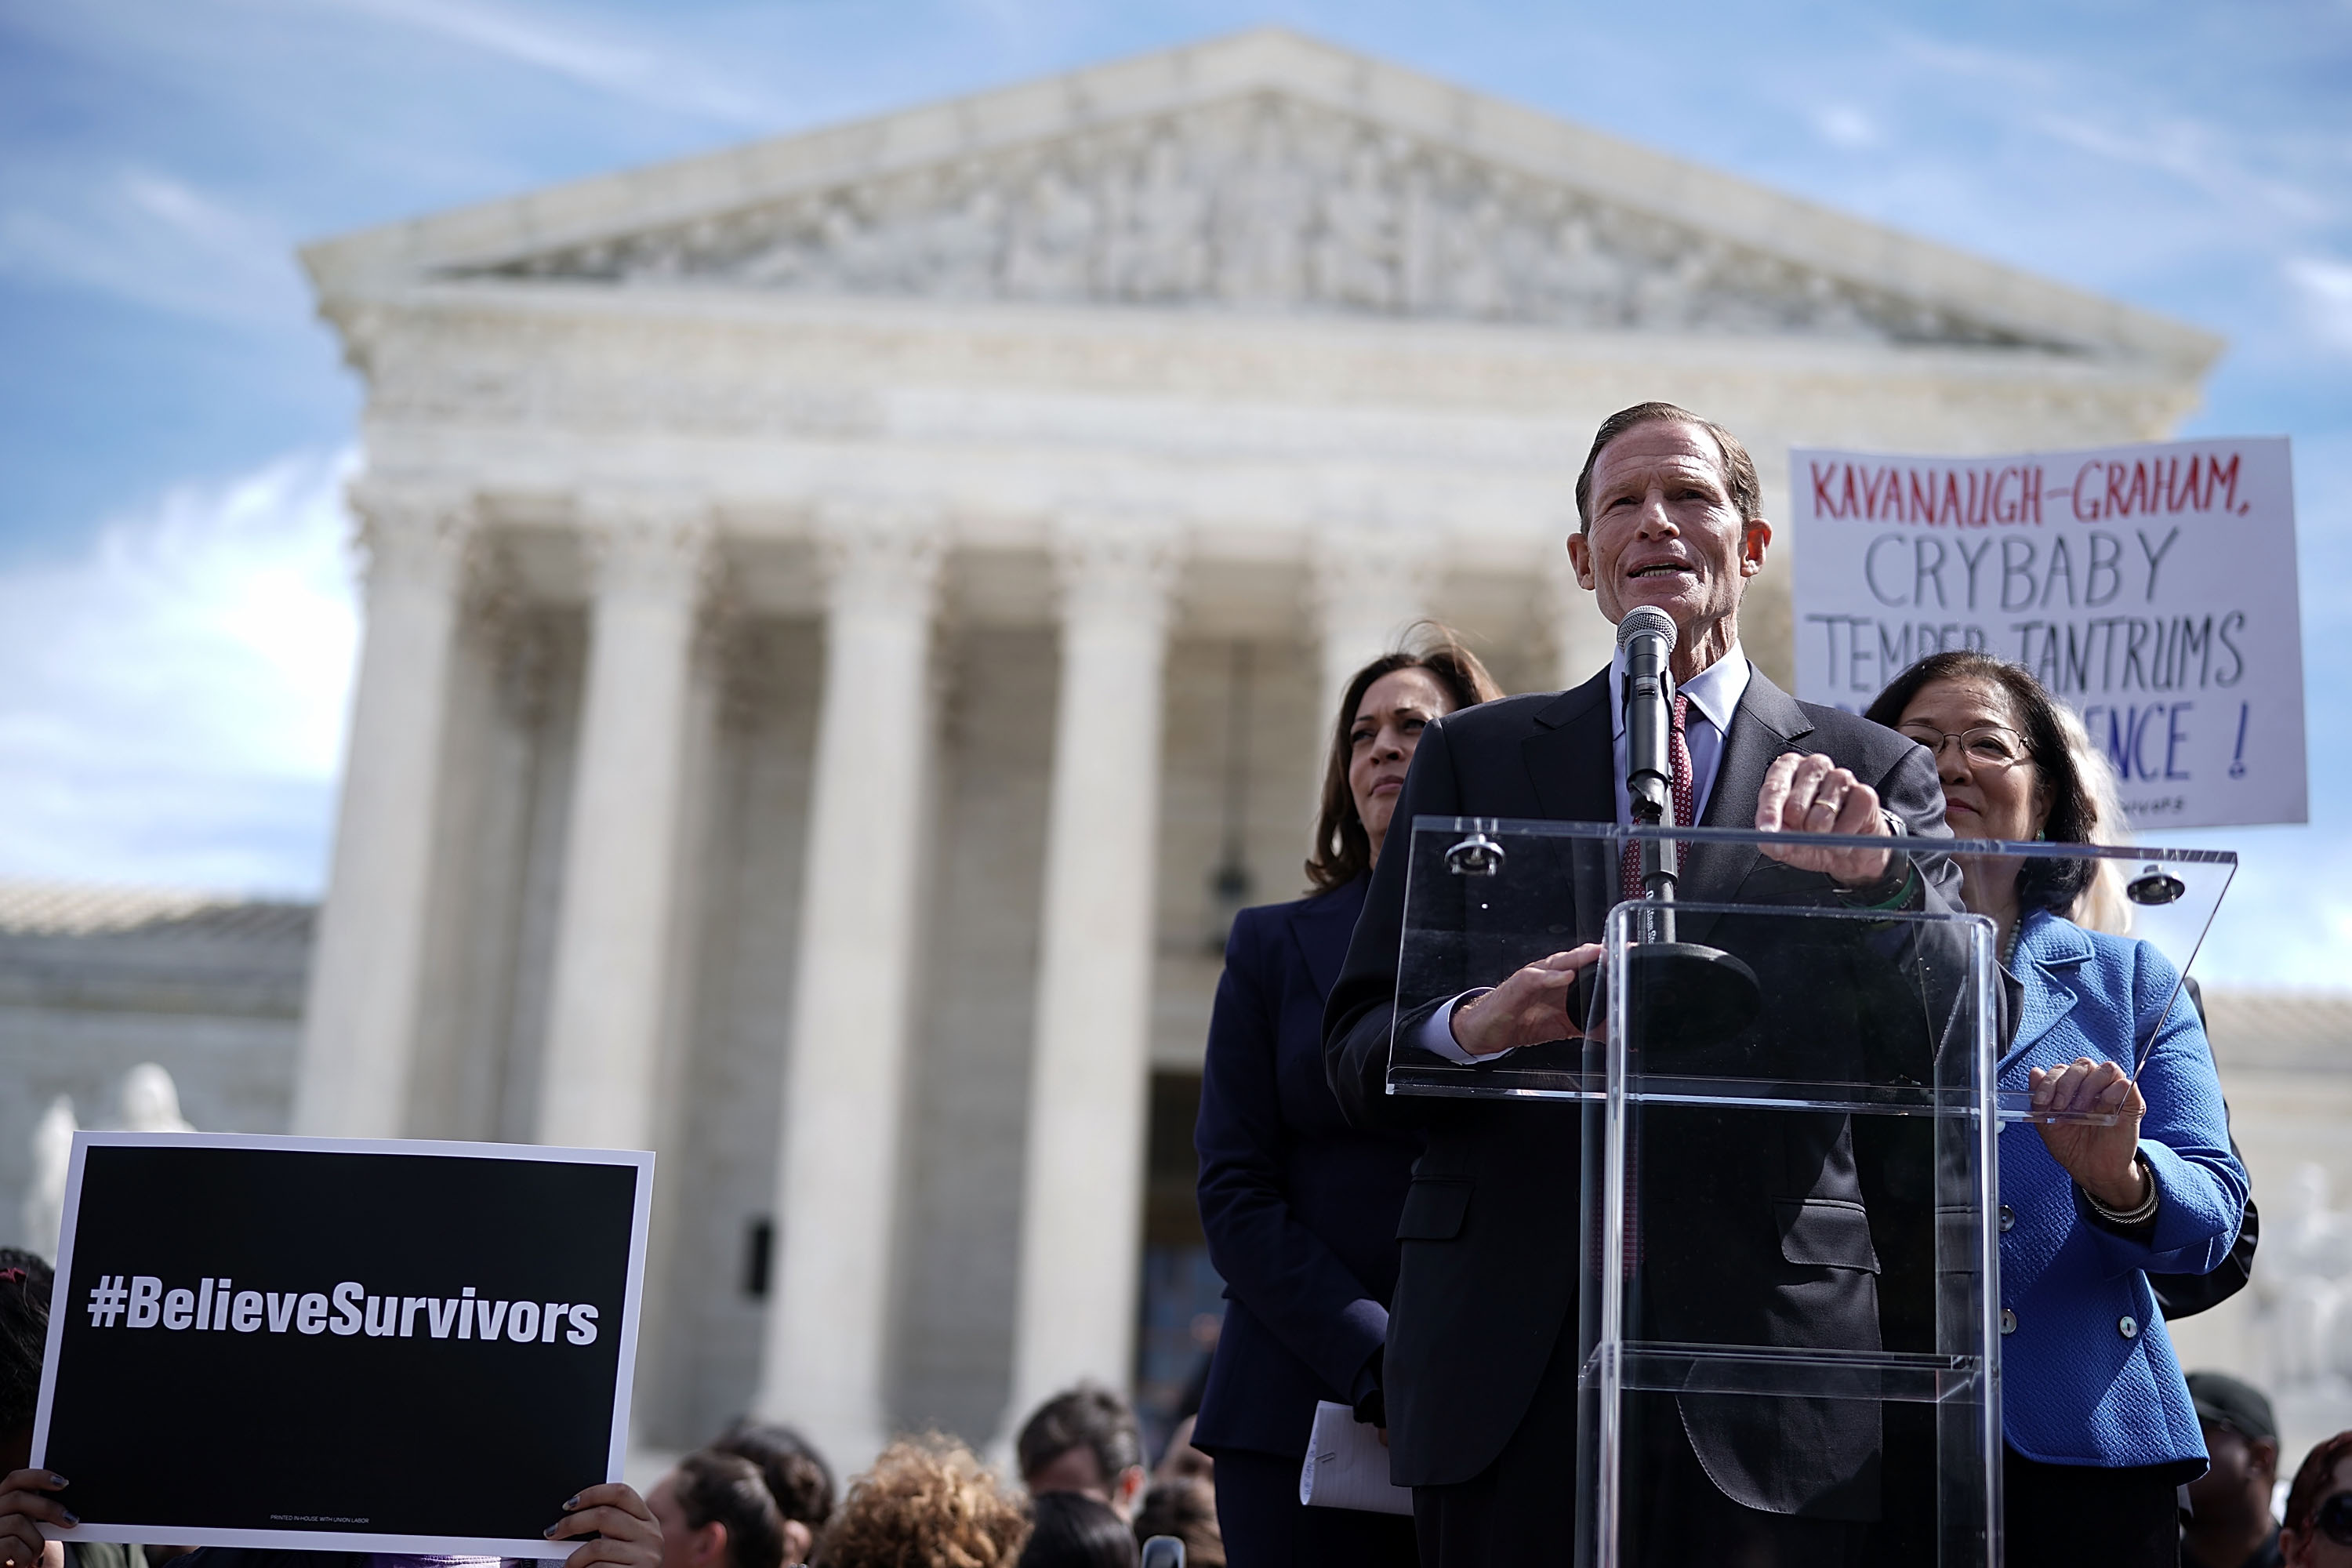 Sen. Richard Blumenthal (D-CT) speaks at a rally opposing Brett Kavanaugh's confirmation to the Supreme Court on September 28, 2018. (Alex Wong/Getty Images)